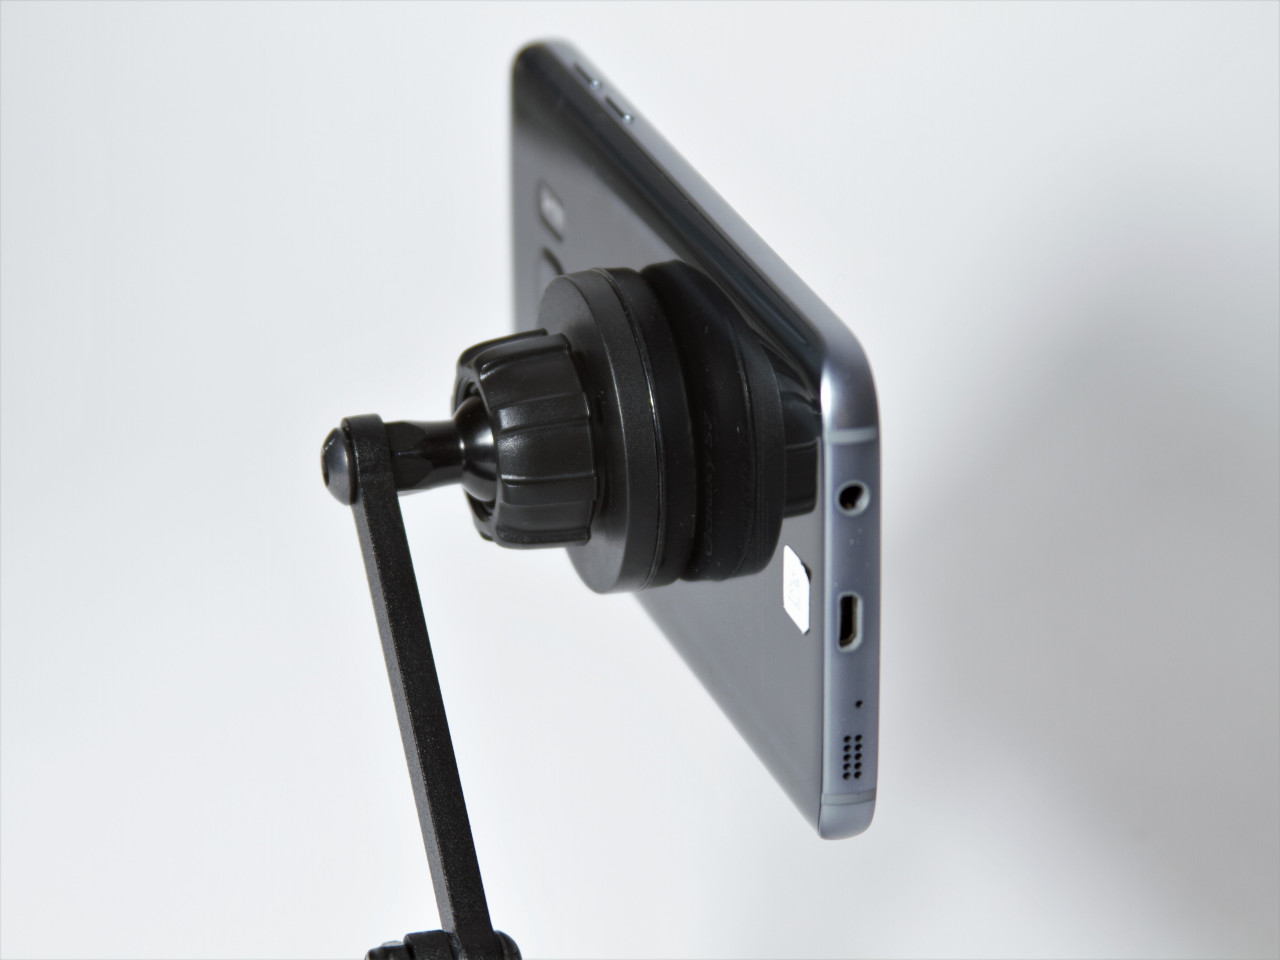 The magnet version of the CravenSpeed Gemini Phone Mount for MINI Cooper F56 holding a Samsung Galaxy S8.